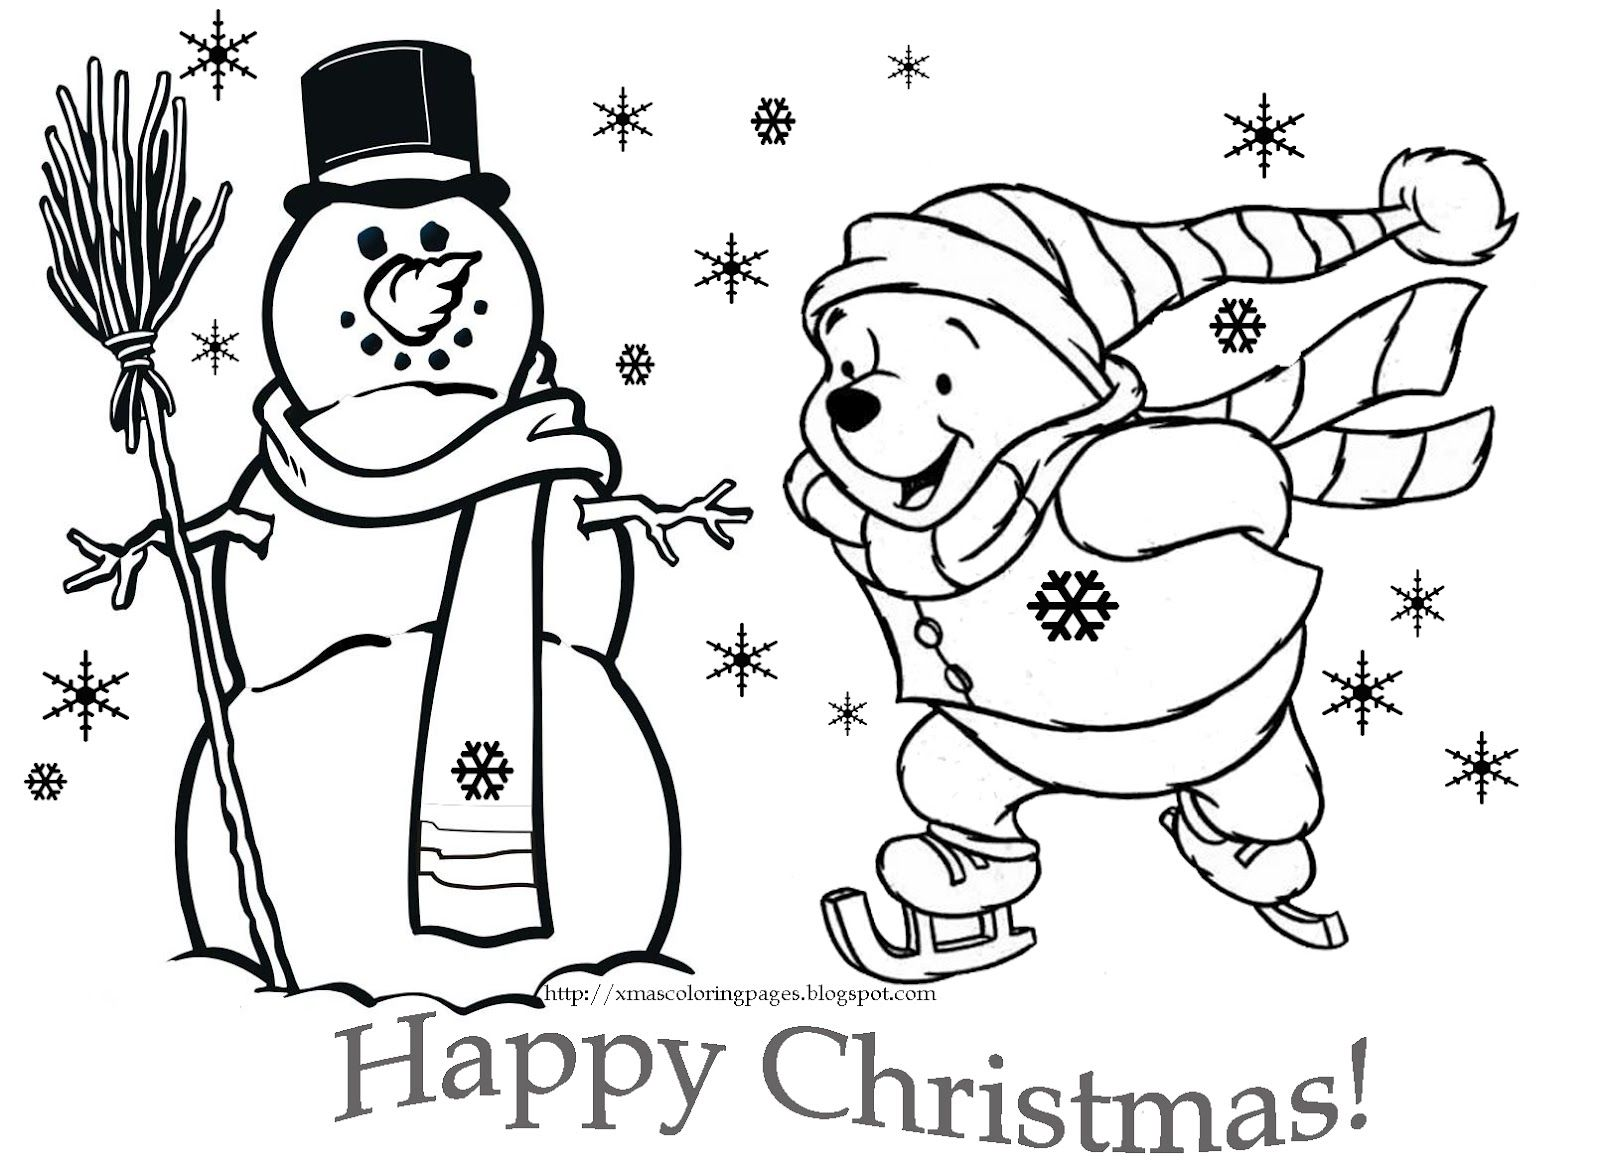 Christmas Coloring Pages And Activities With Pattern Pinterest Dremel Patterns